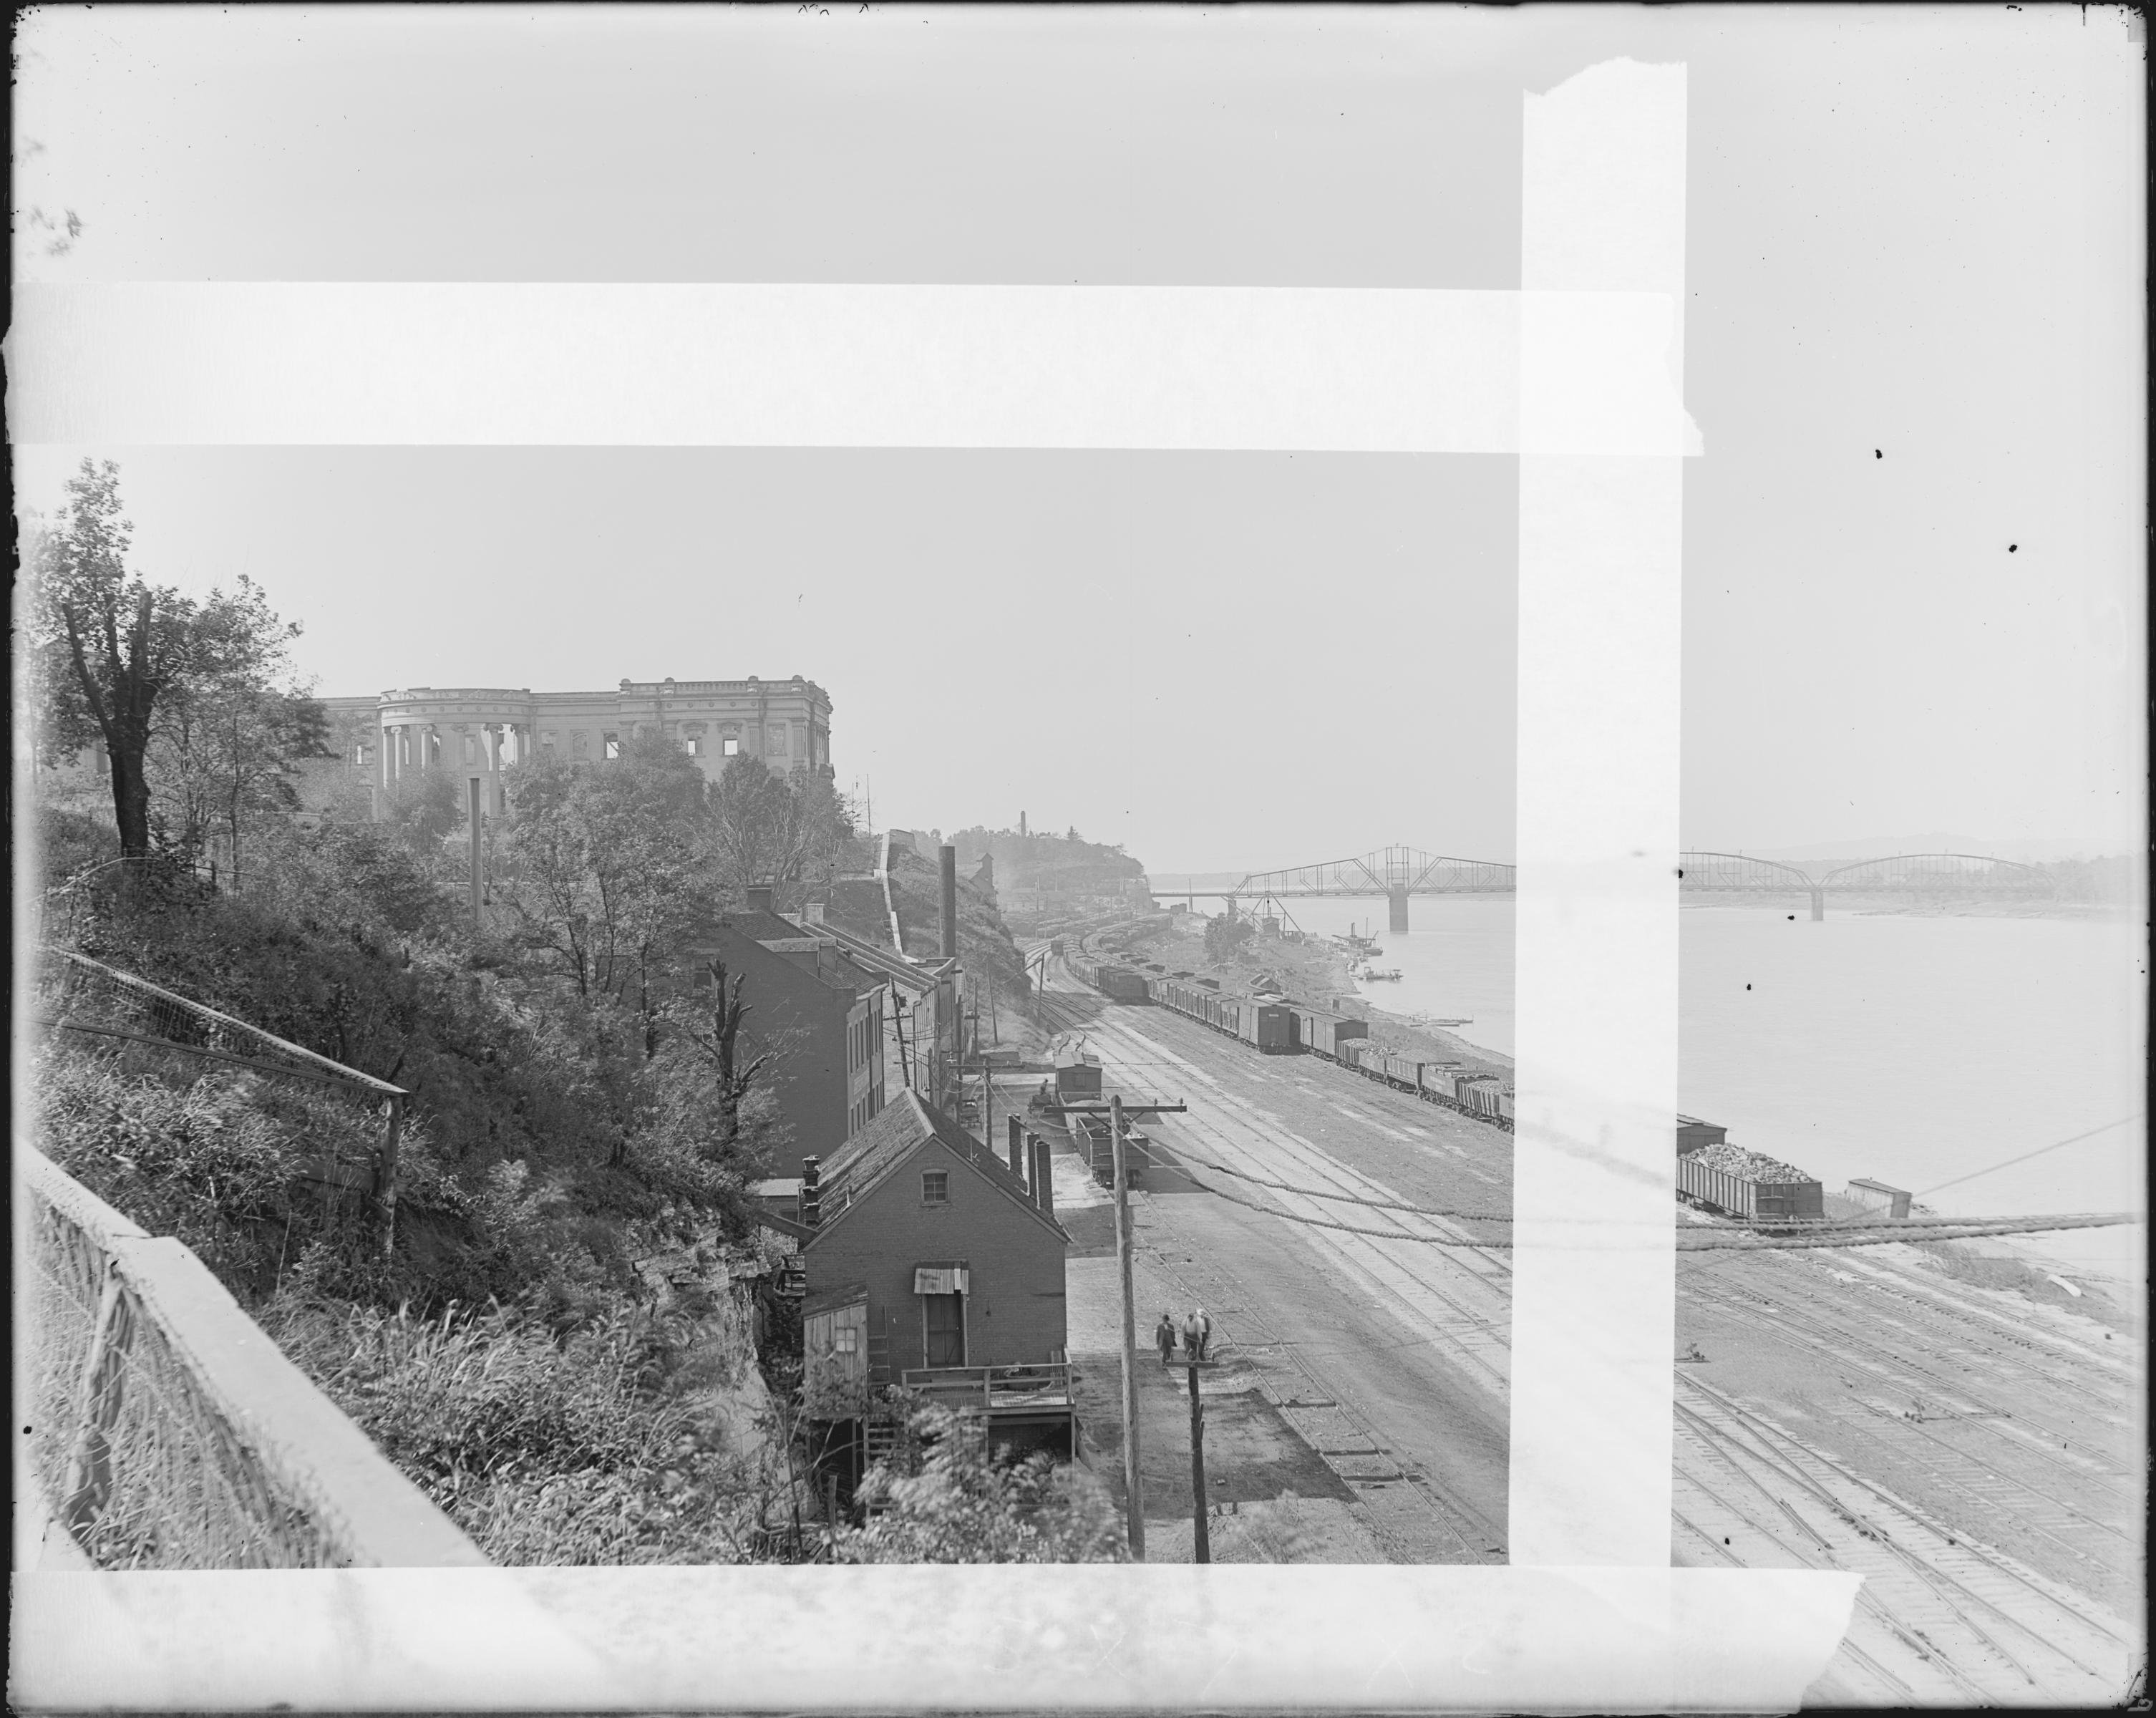 Glass plate negative taken in 1911 looking west toward the ruins of the old Mo. State Capitol.  Also shows the buildings which now constitute Jefferson Landing State Historic Site, in the foreground. Courtesy Missouri State Museum.